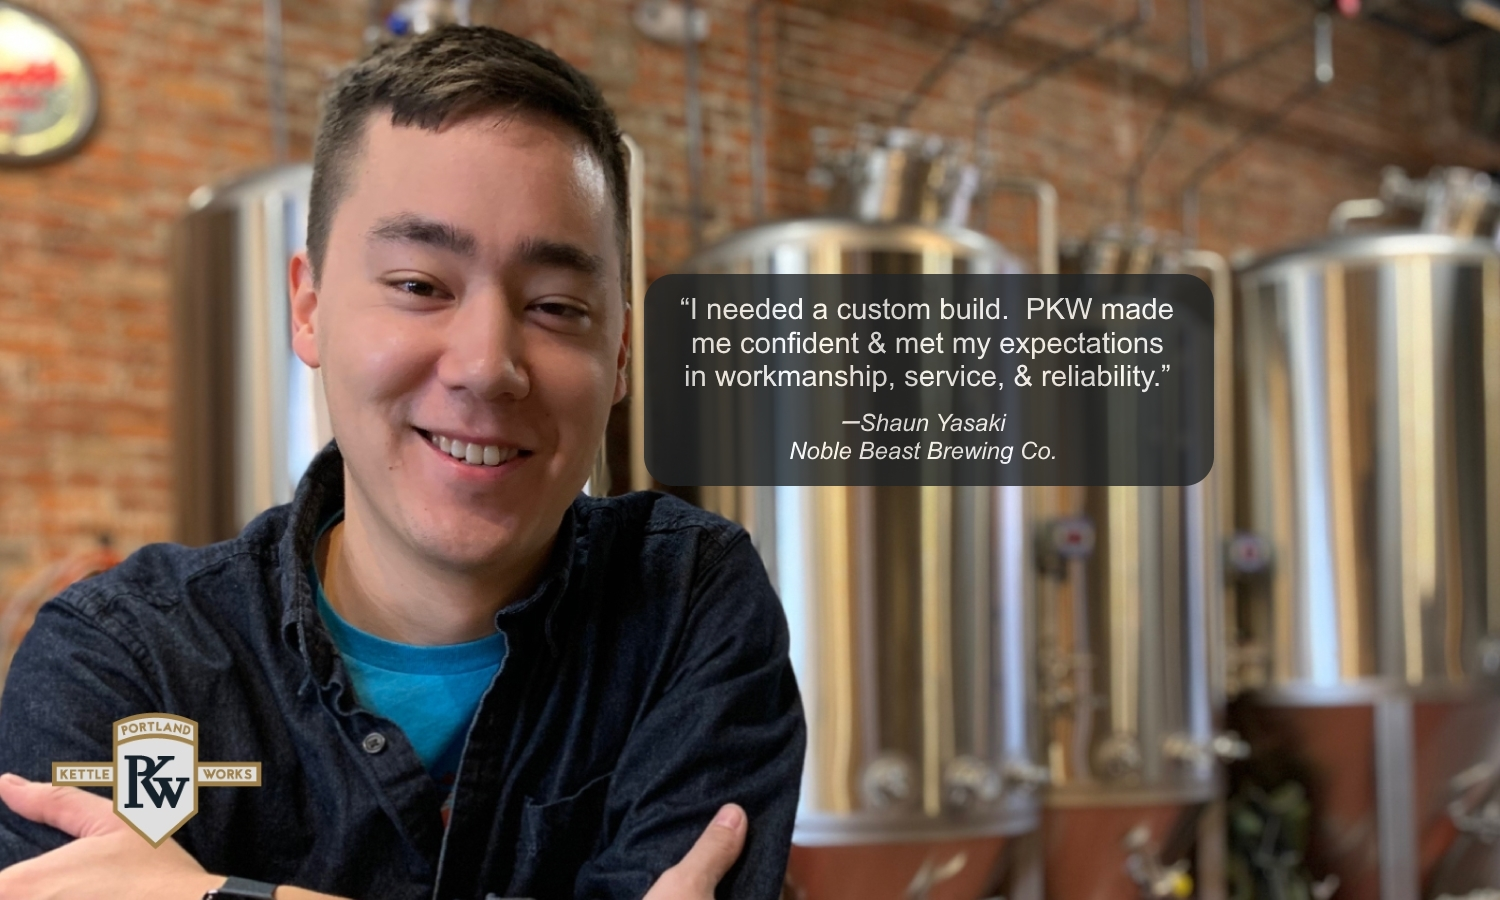 PKW Brewing Equipment at Noble Beast Brewery with Client Testimonial